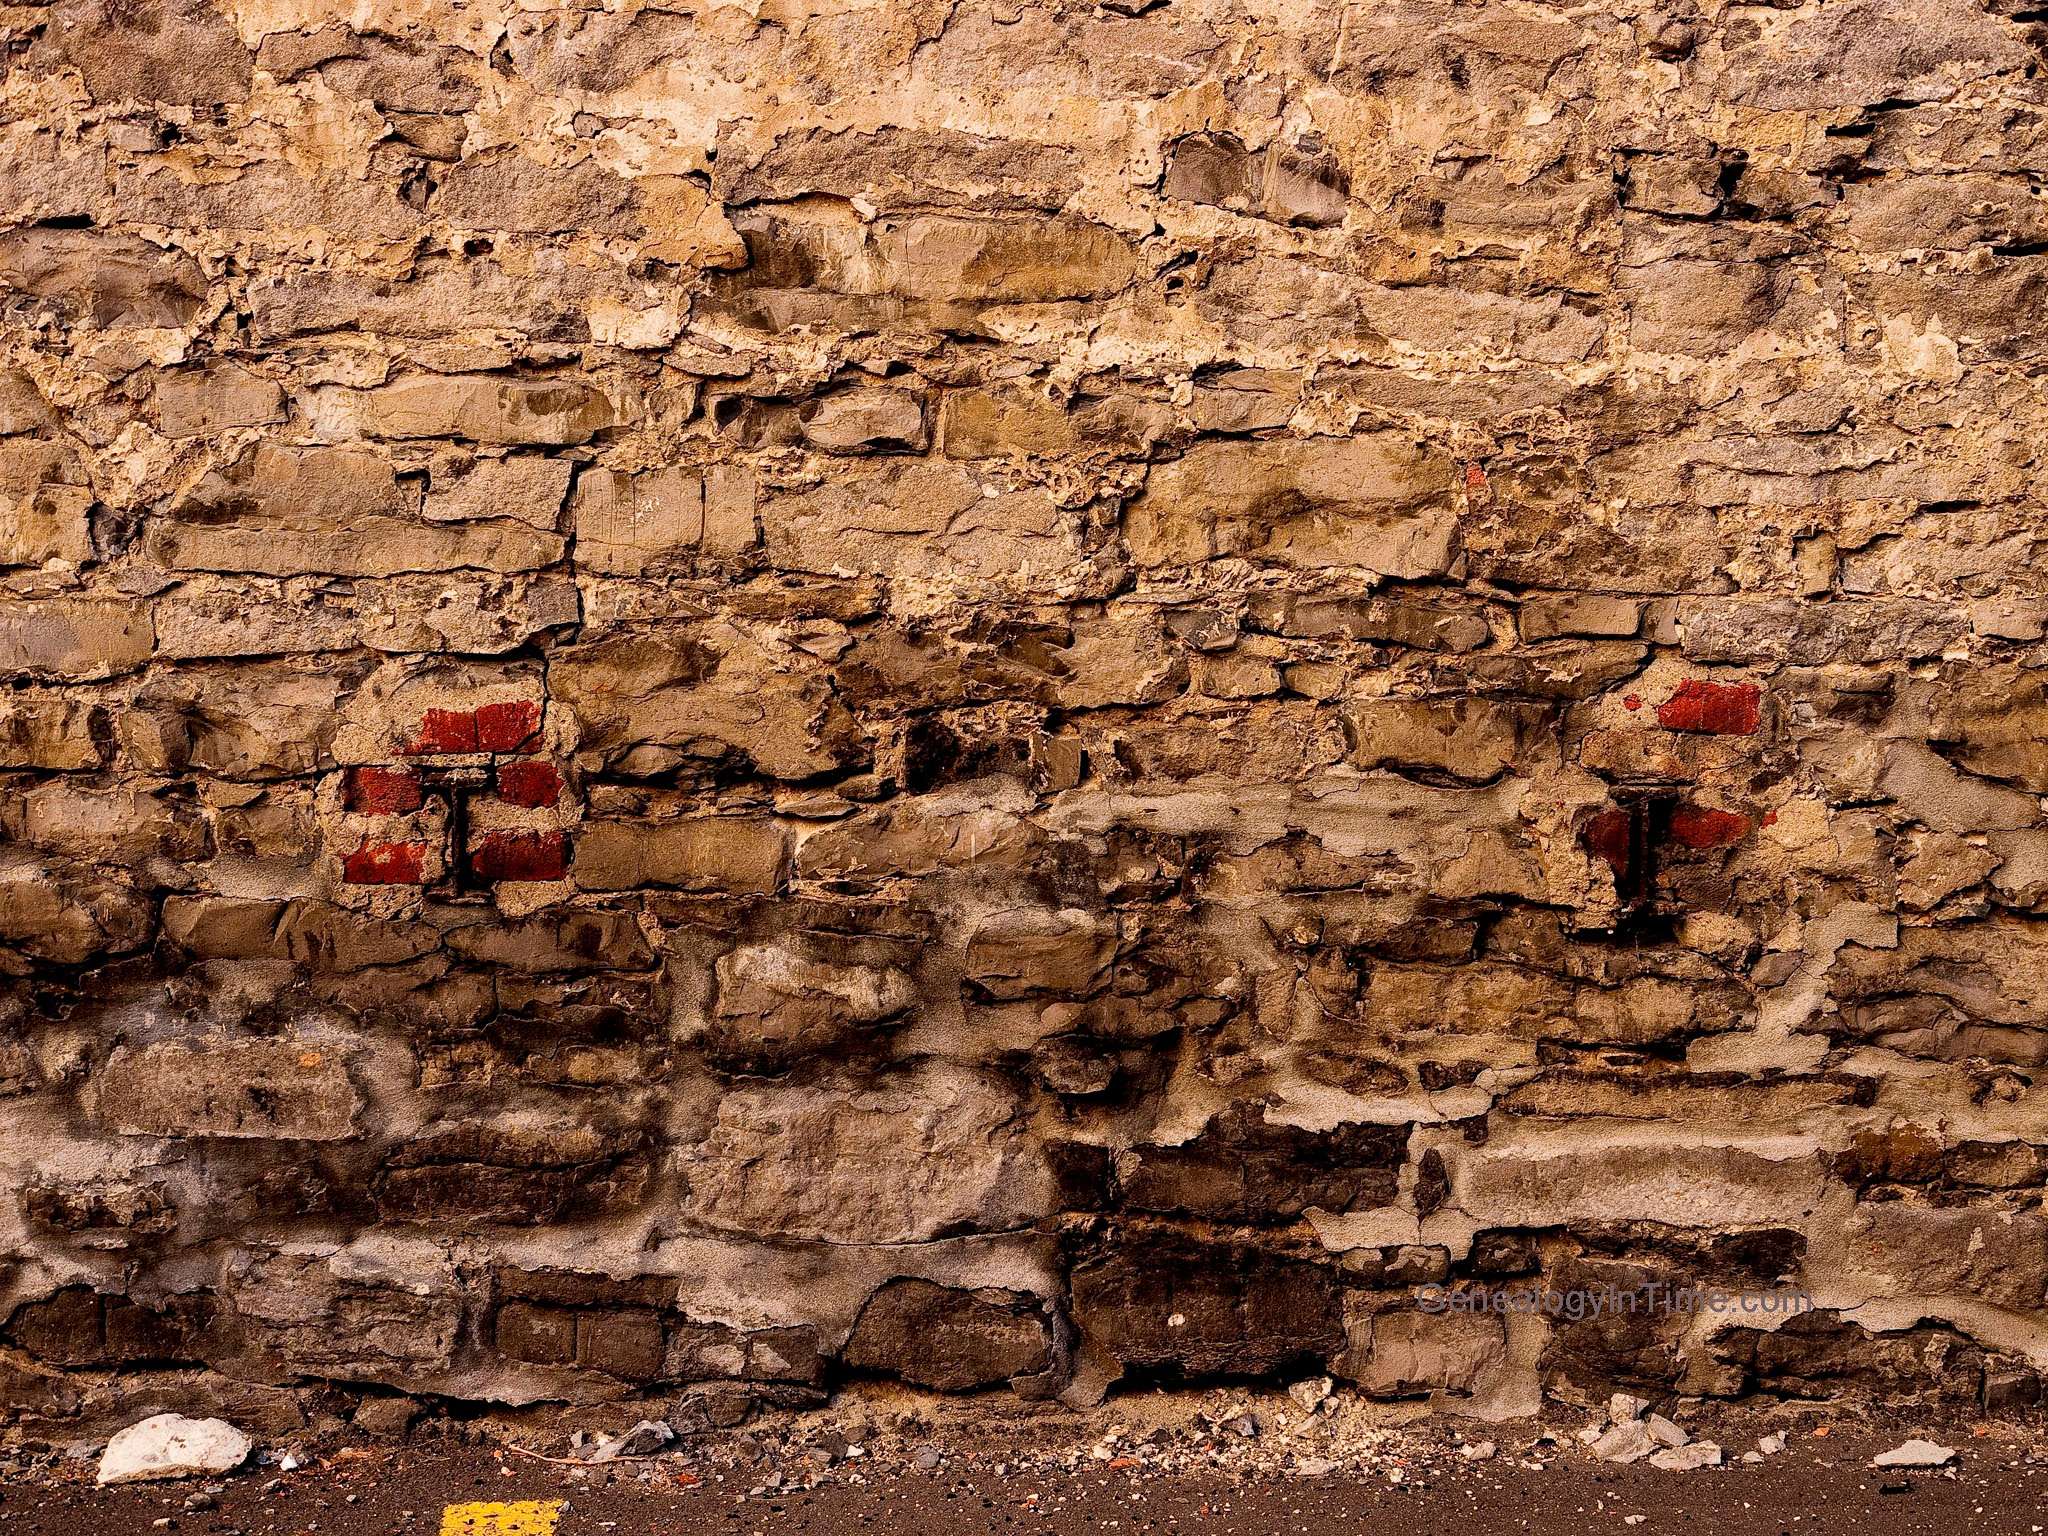 Image 04   Brick Supports in Old Stone Wall 2048x1536